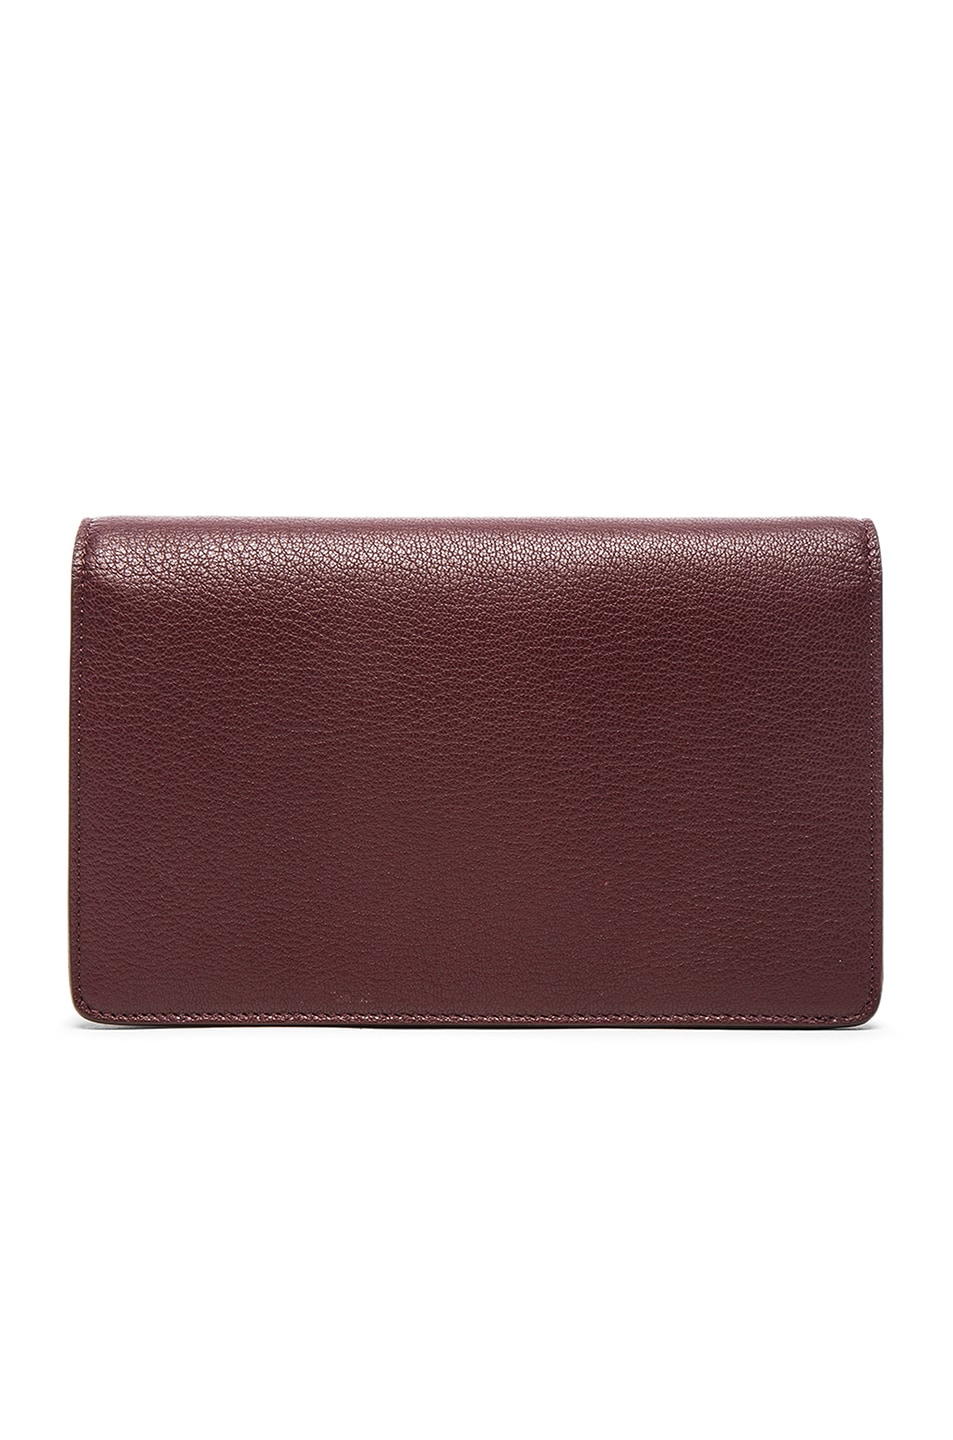 Image 3 of Givenchy Pandora Chain Wallet in Oxblood